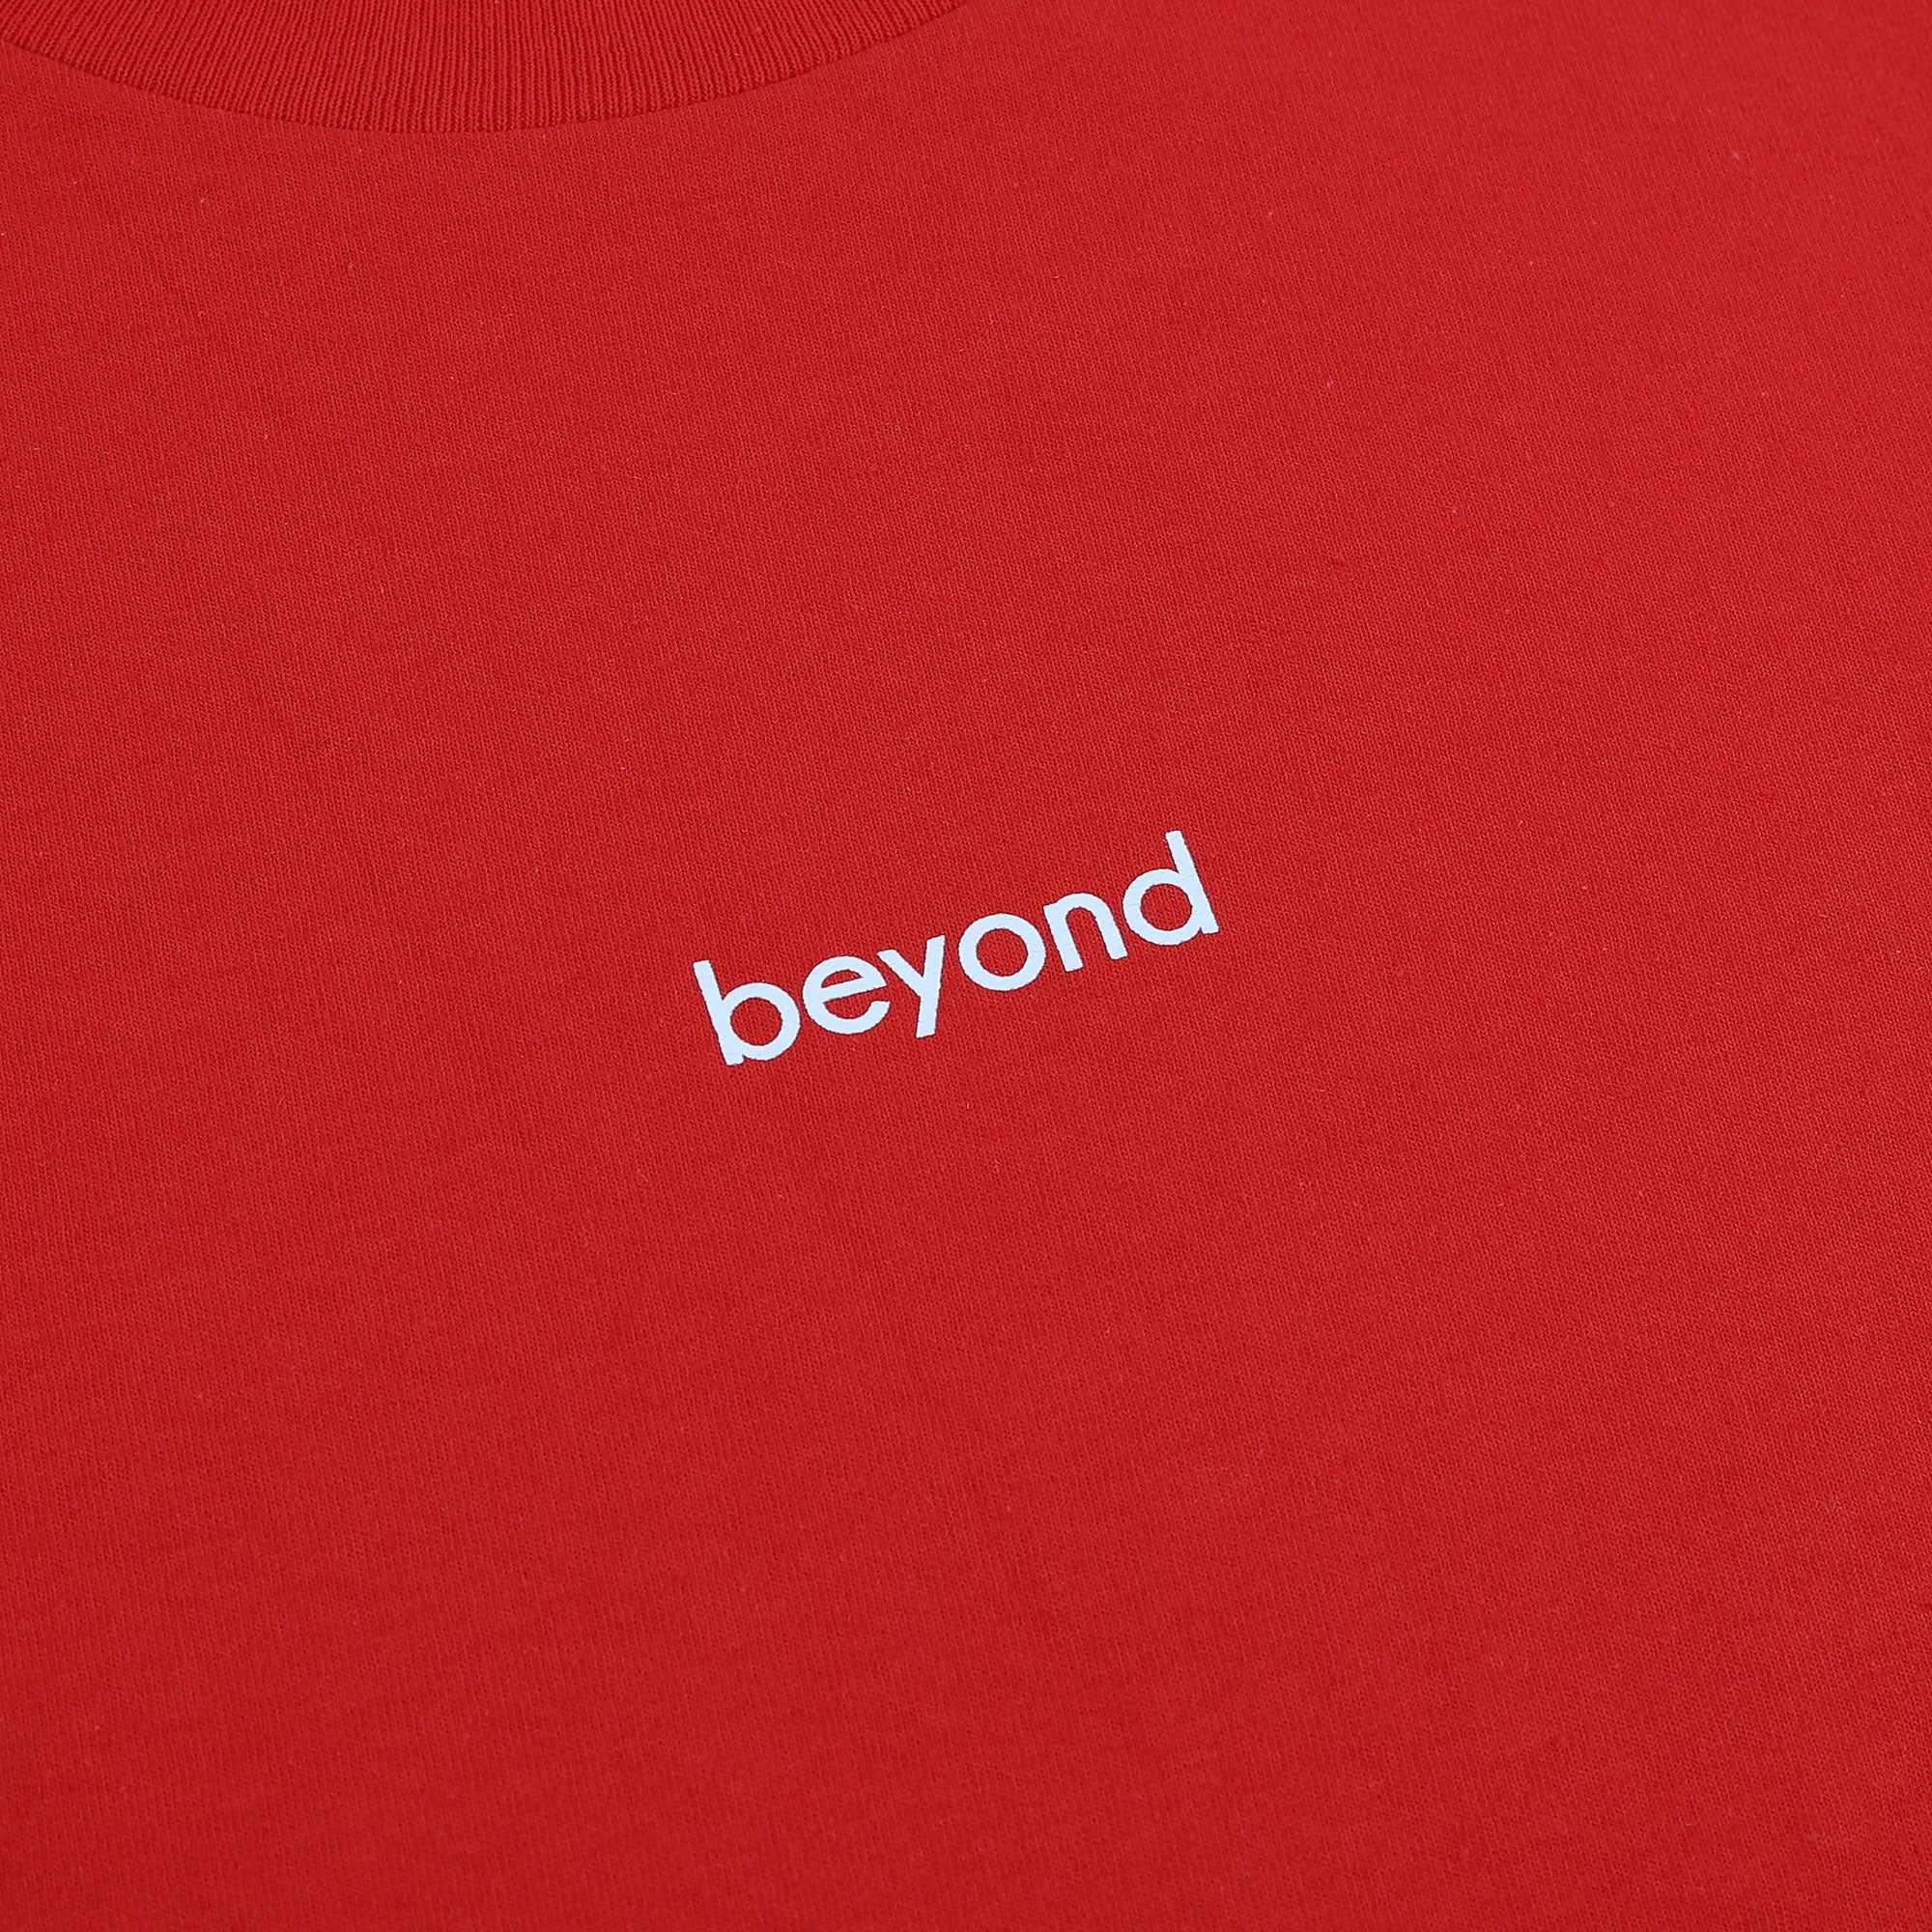 Beyond Lil Logo Tee Product Photo #2